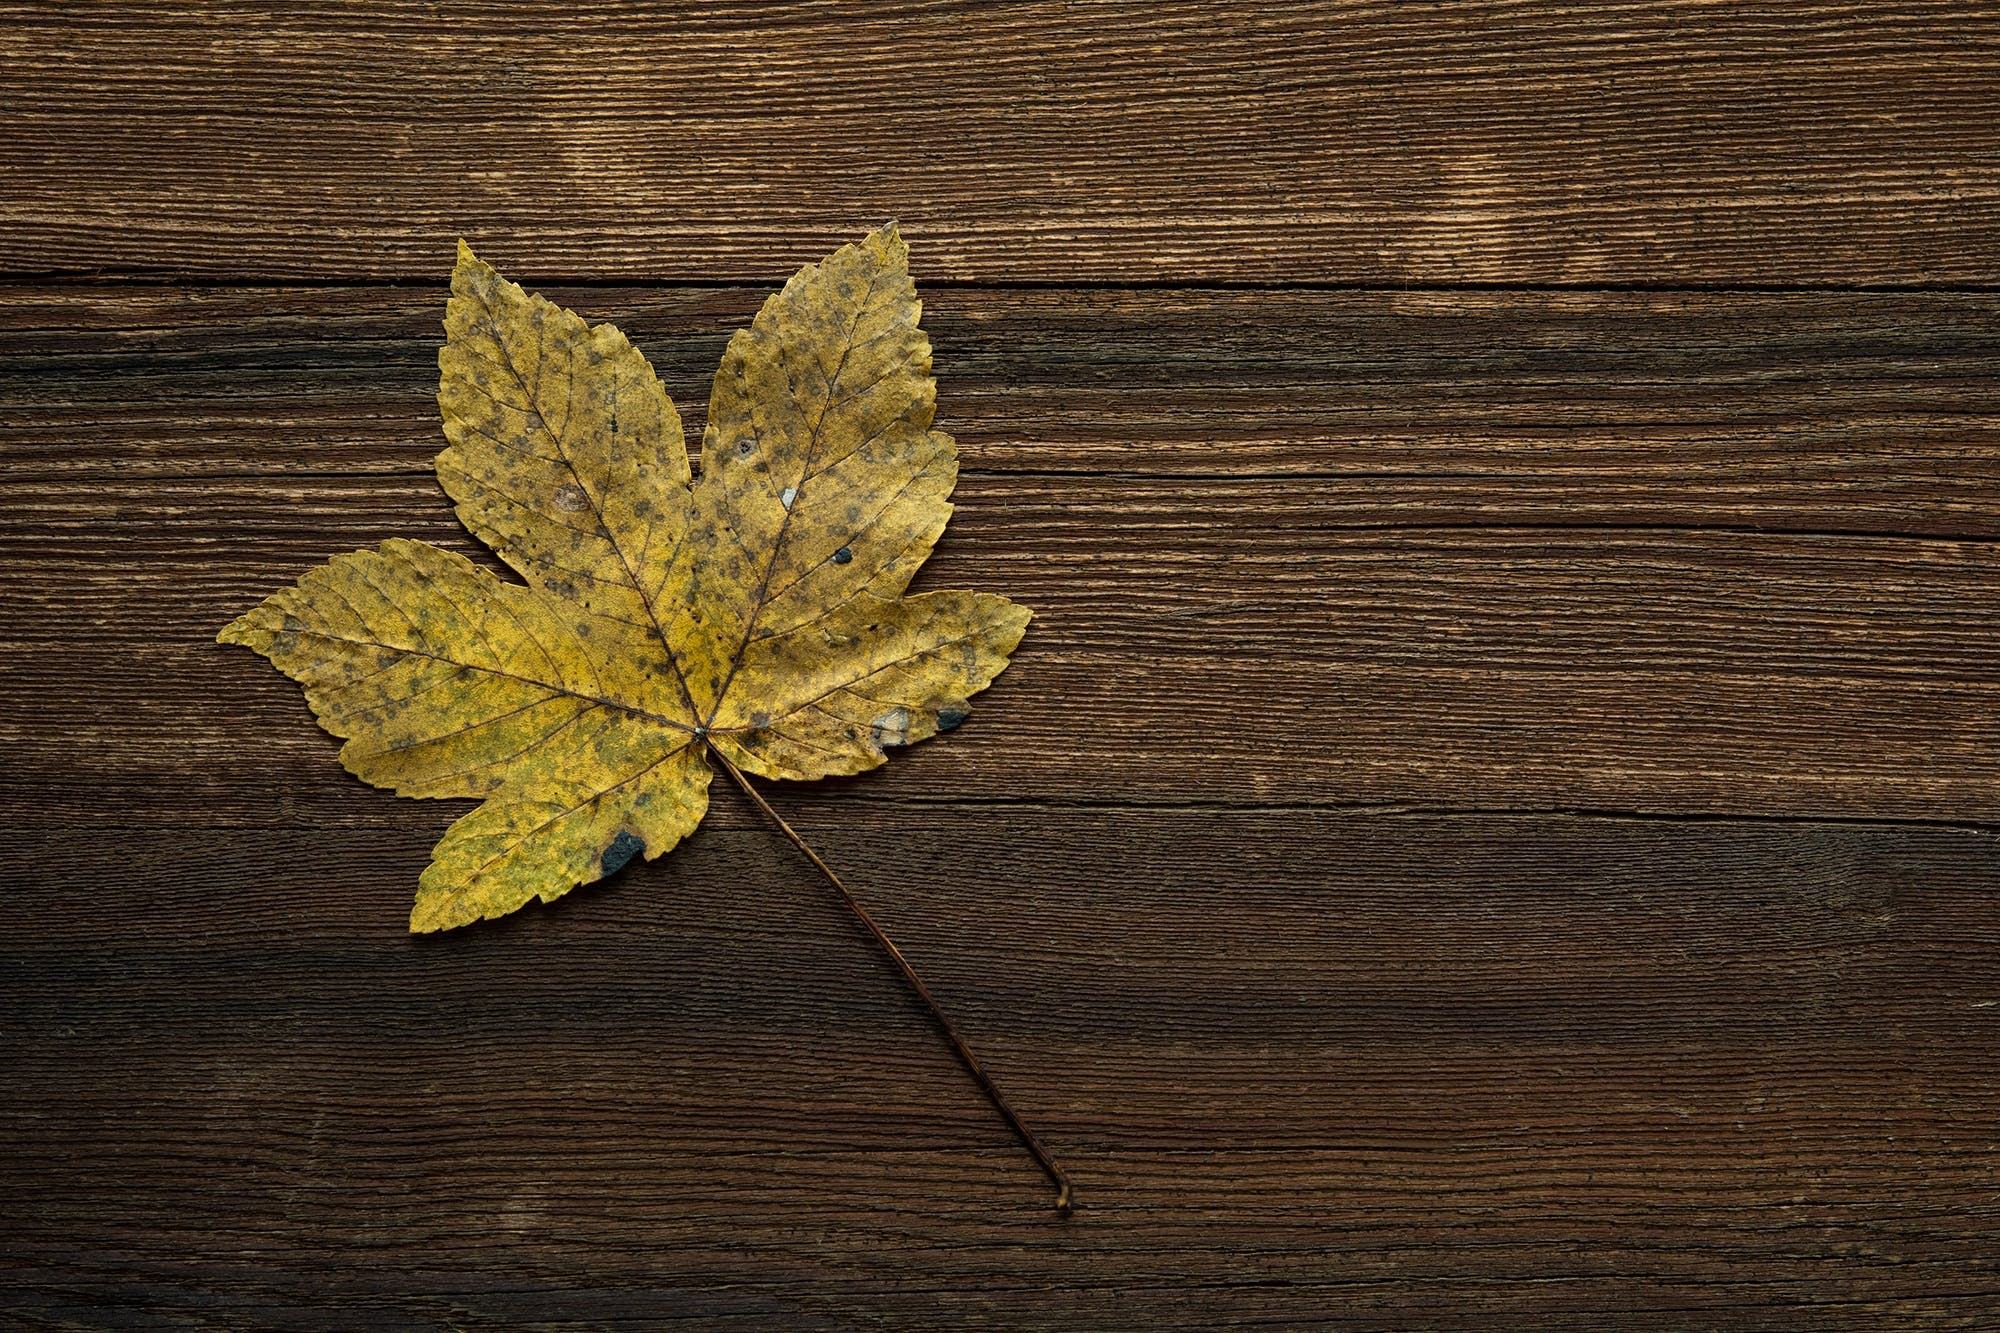 Brown Leaf on Brown Wooden Surface